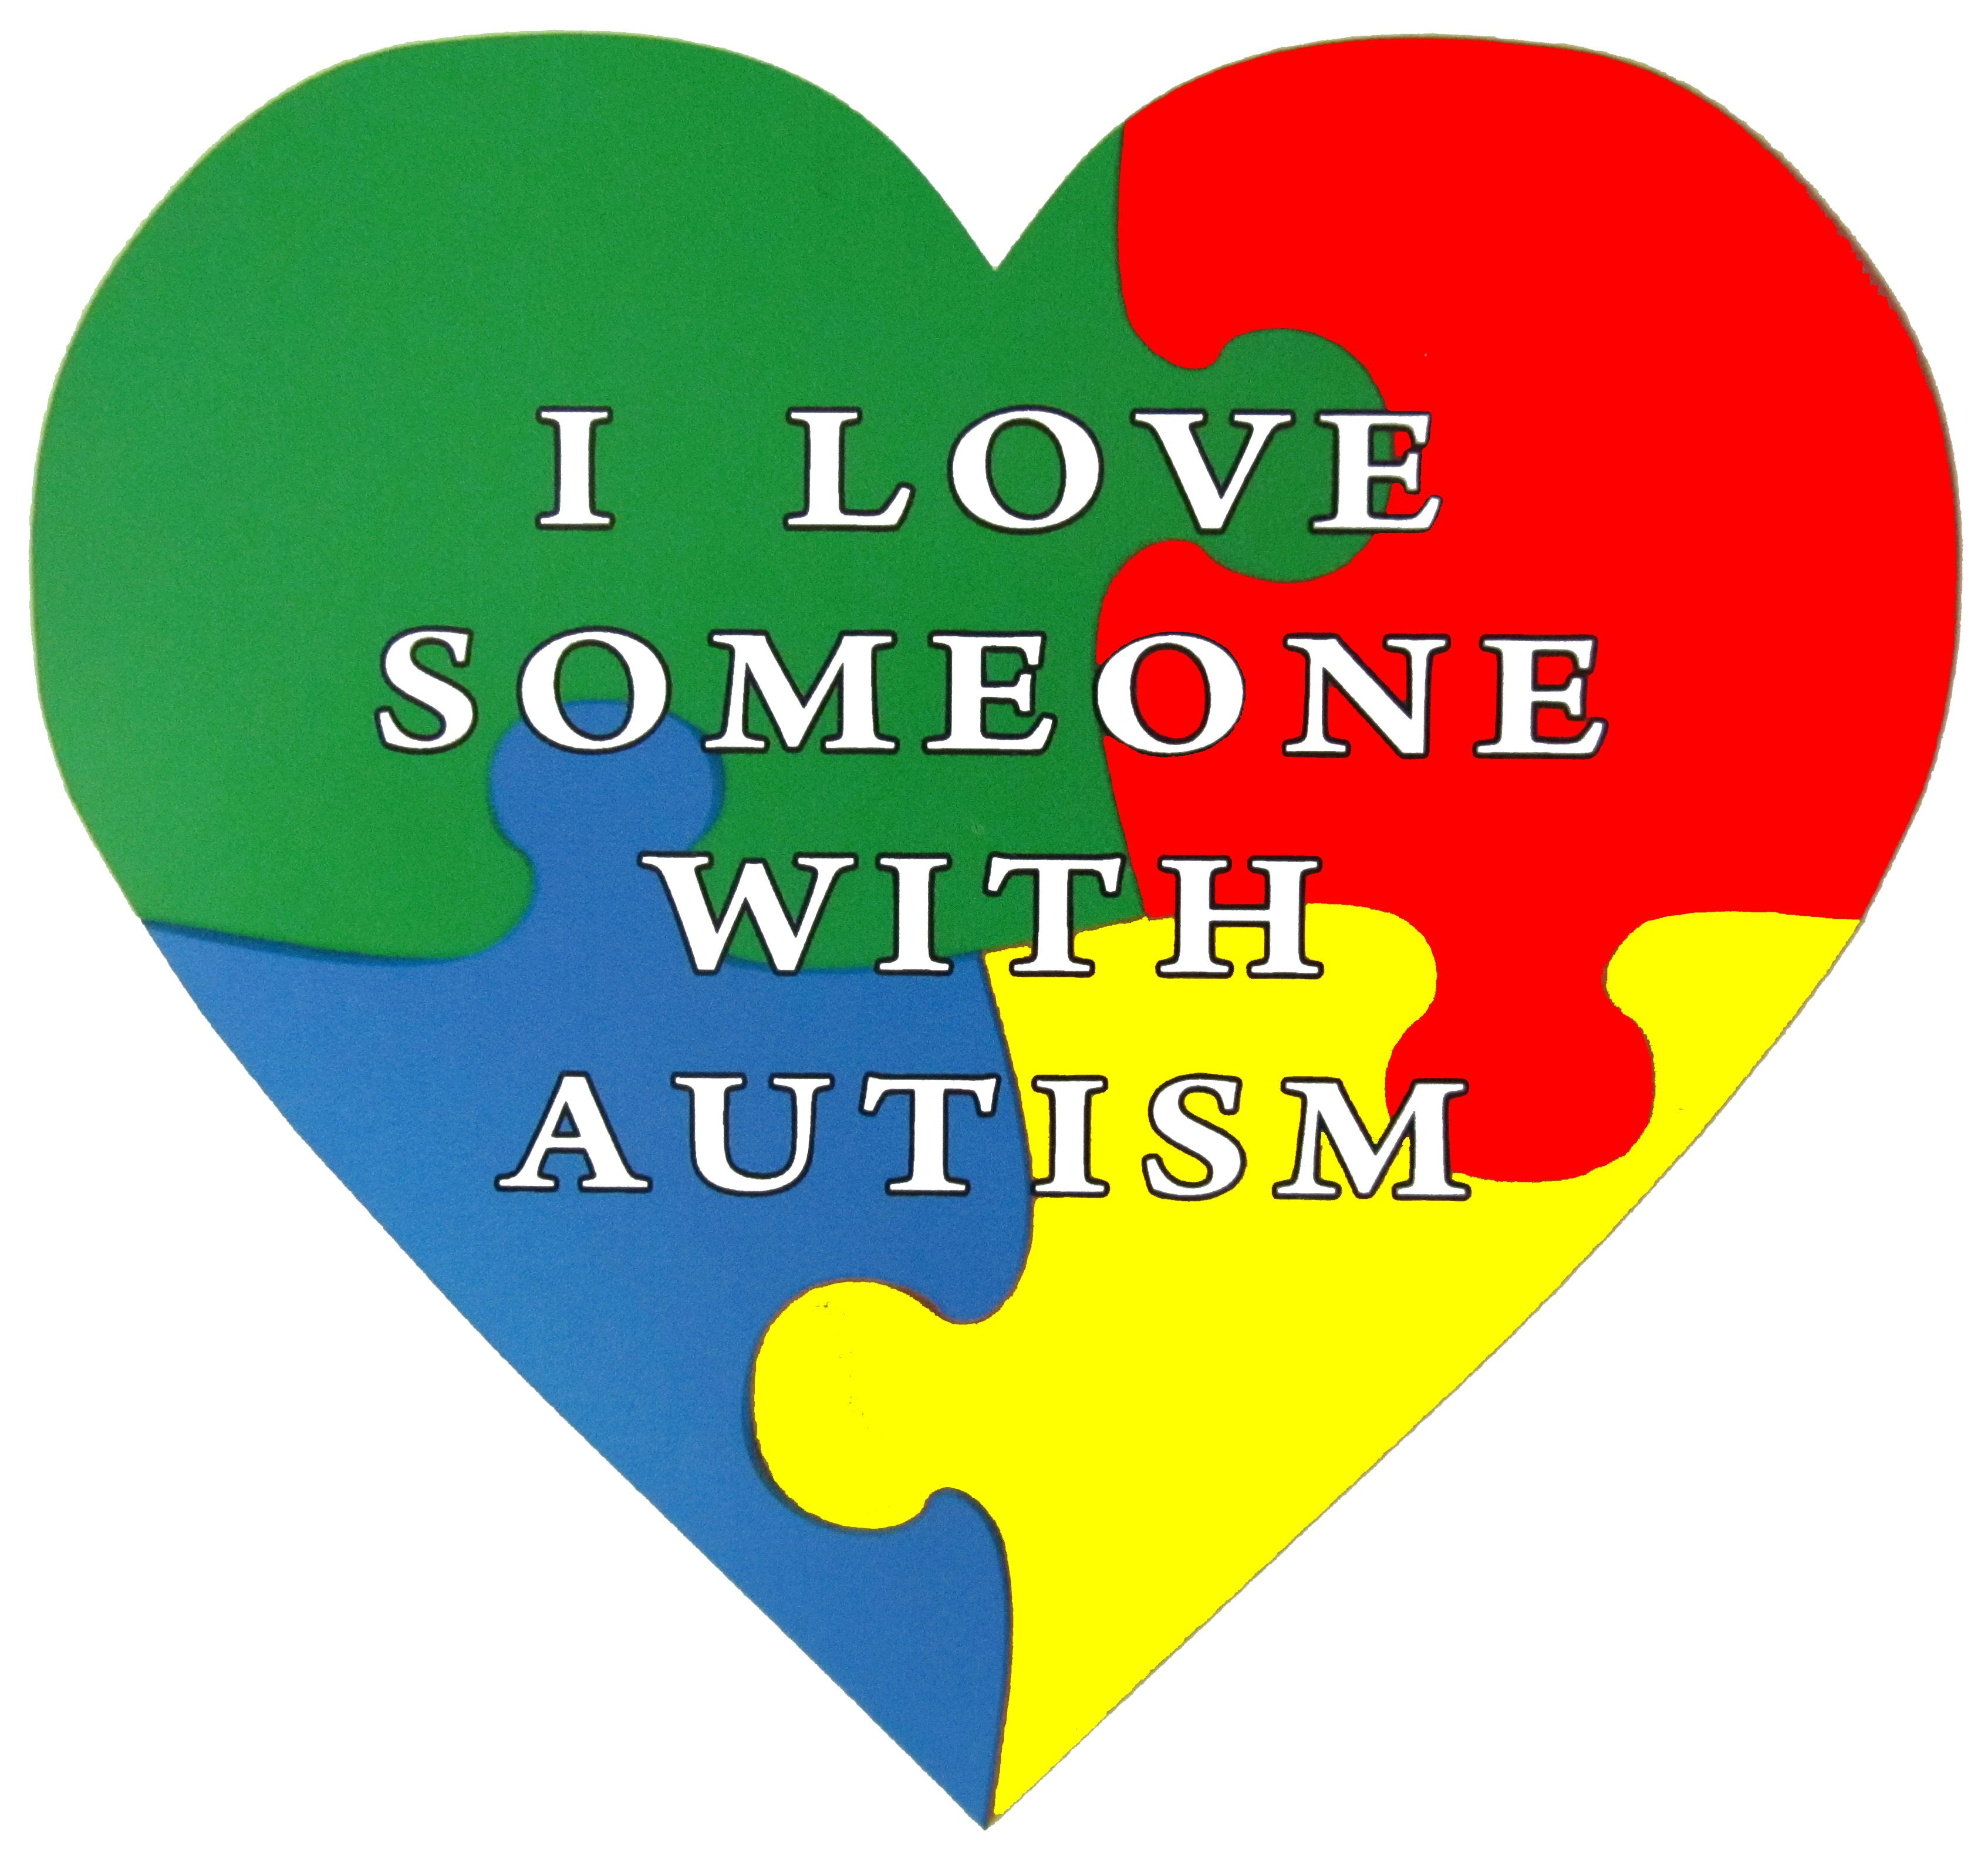 Autism Symbol Charm Says Autism Awareness With An Puzzle Piece